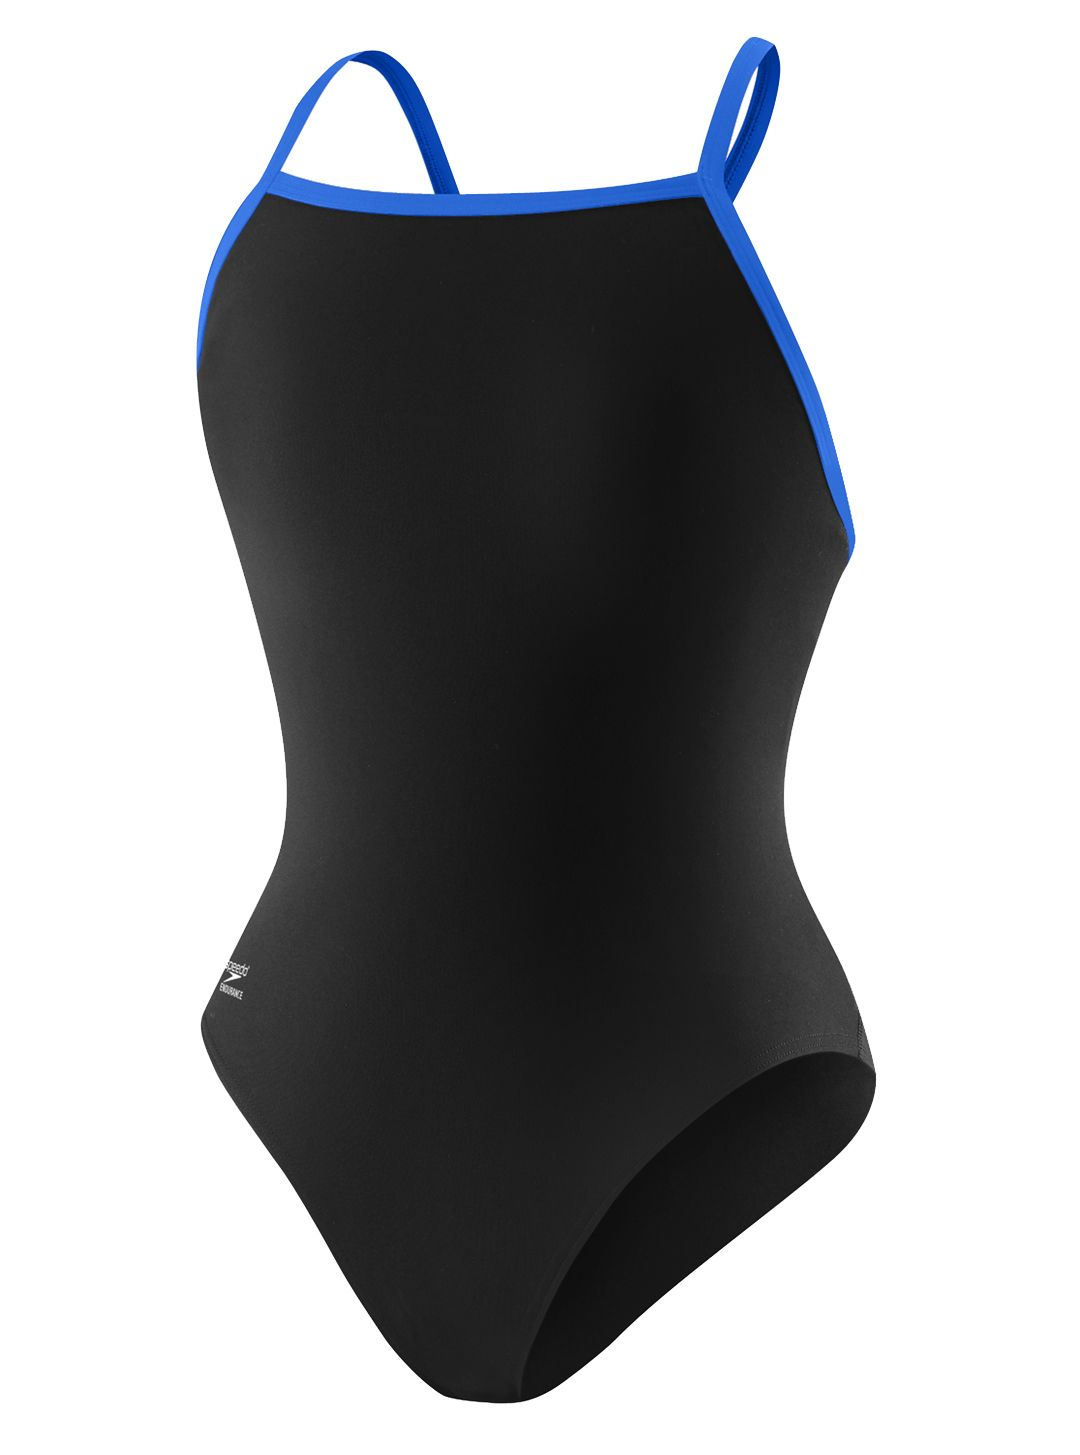 790f6664378fb Speedo Women's Flyback Endurance+ Training Swimsuit | DICK'S ...